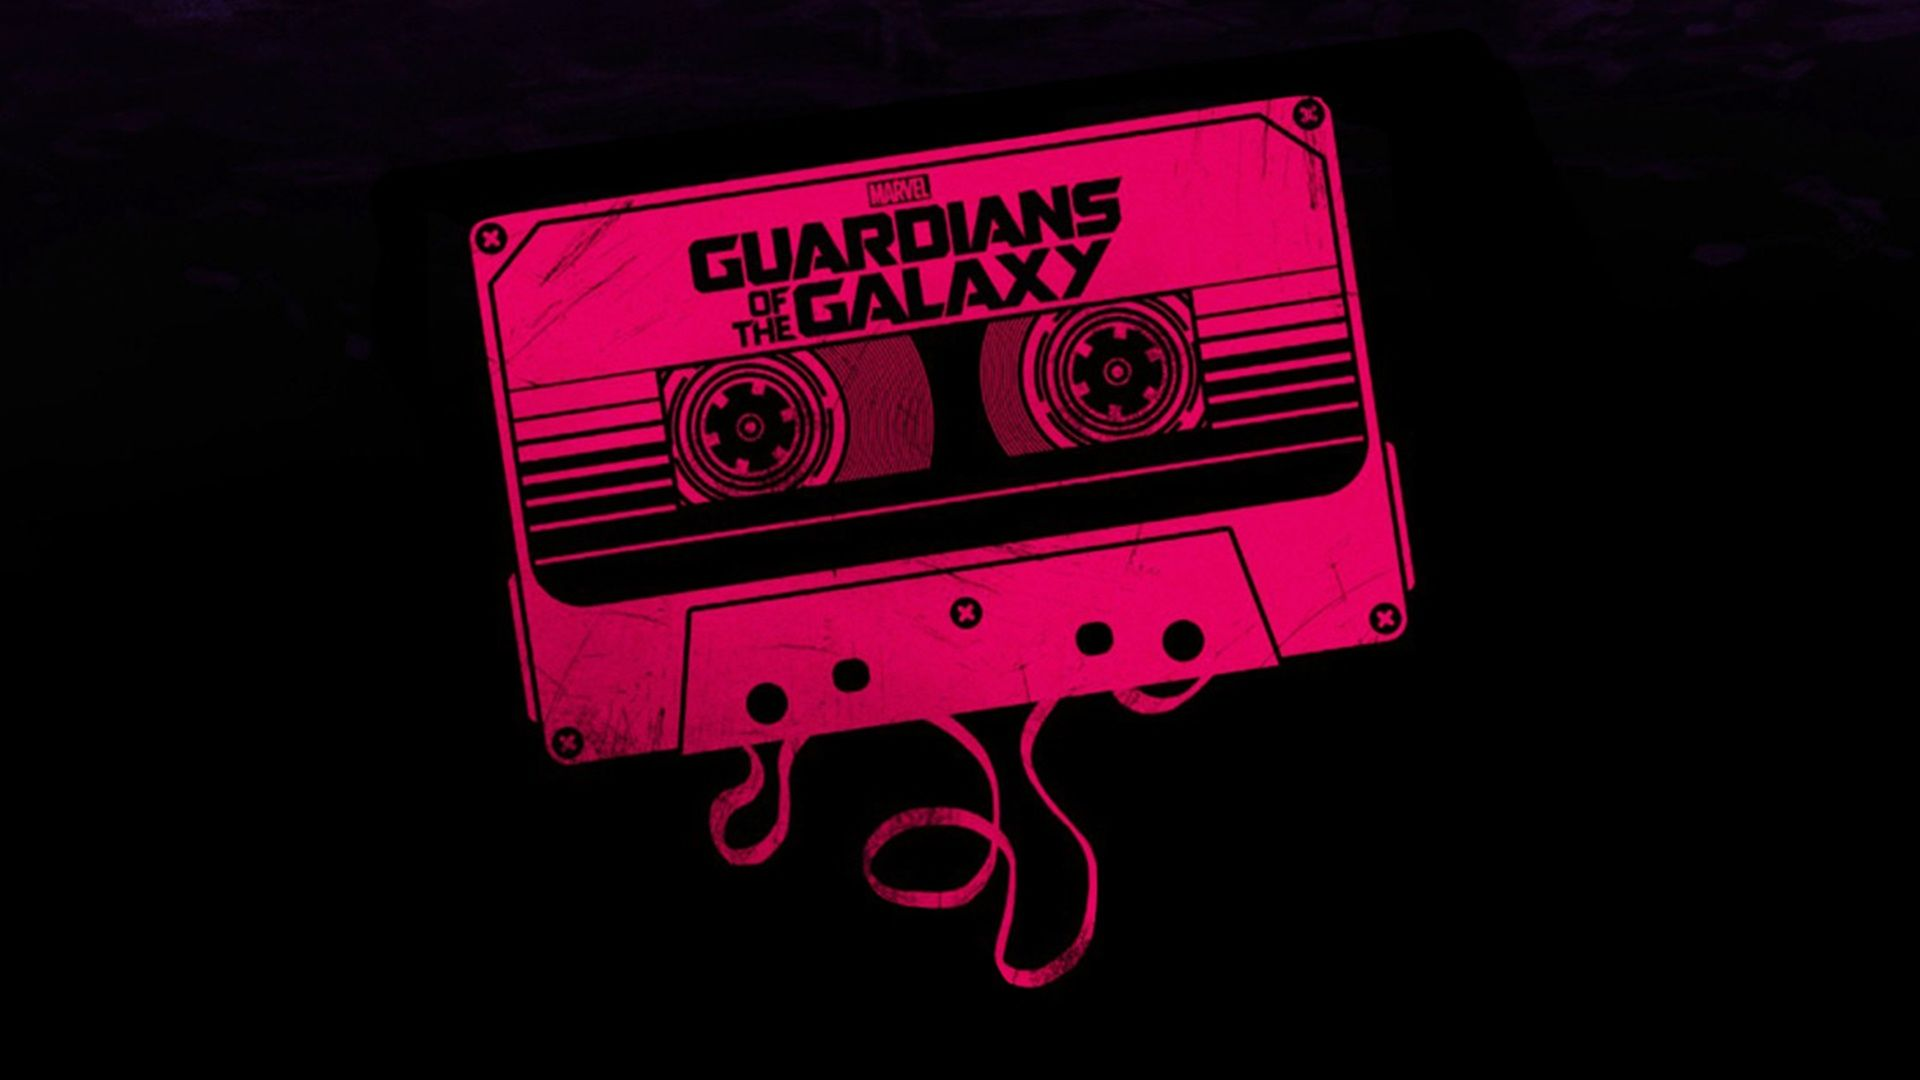 Guardians Of The Galaxy Marvel Cassette Hd Wallpaper Jpg 1920 1080 Galaxy Hd Guardians Of The Galaxy Galaxy Pictures